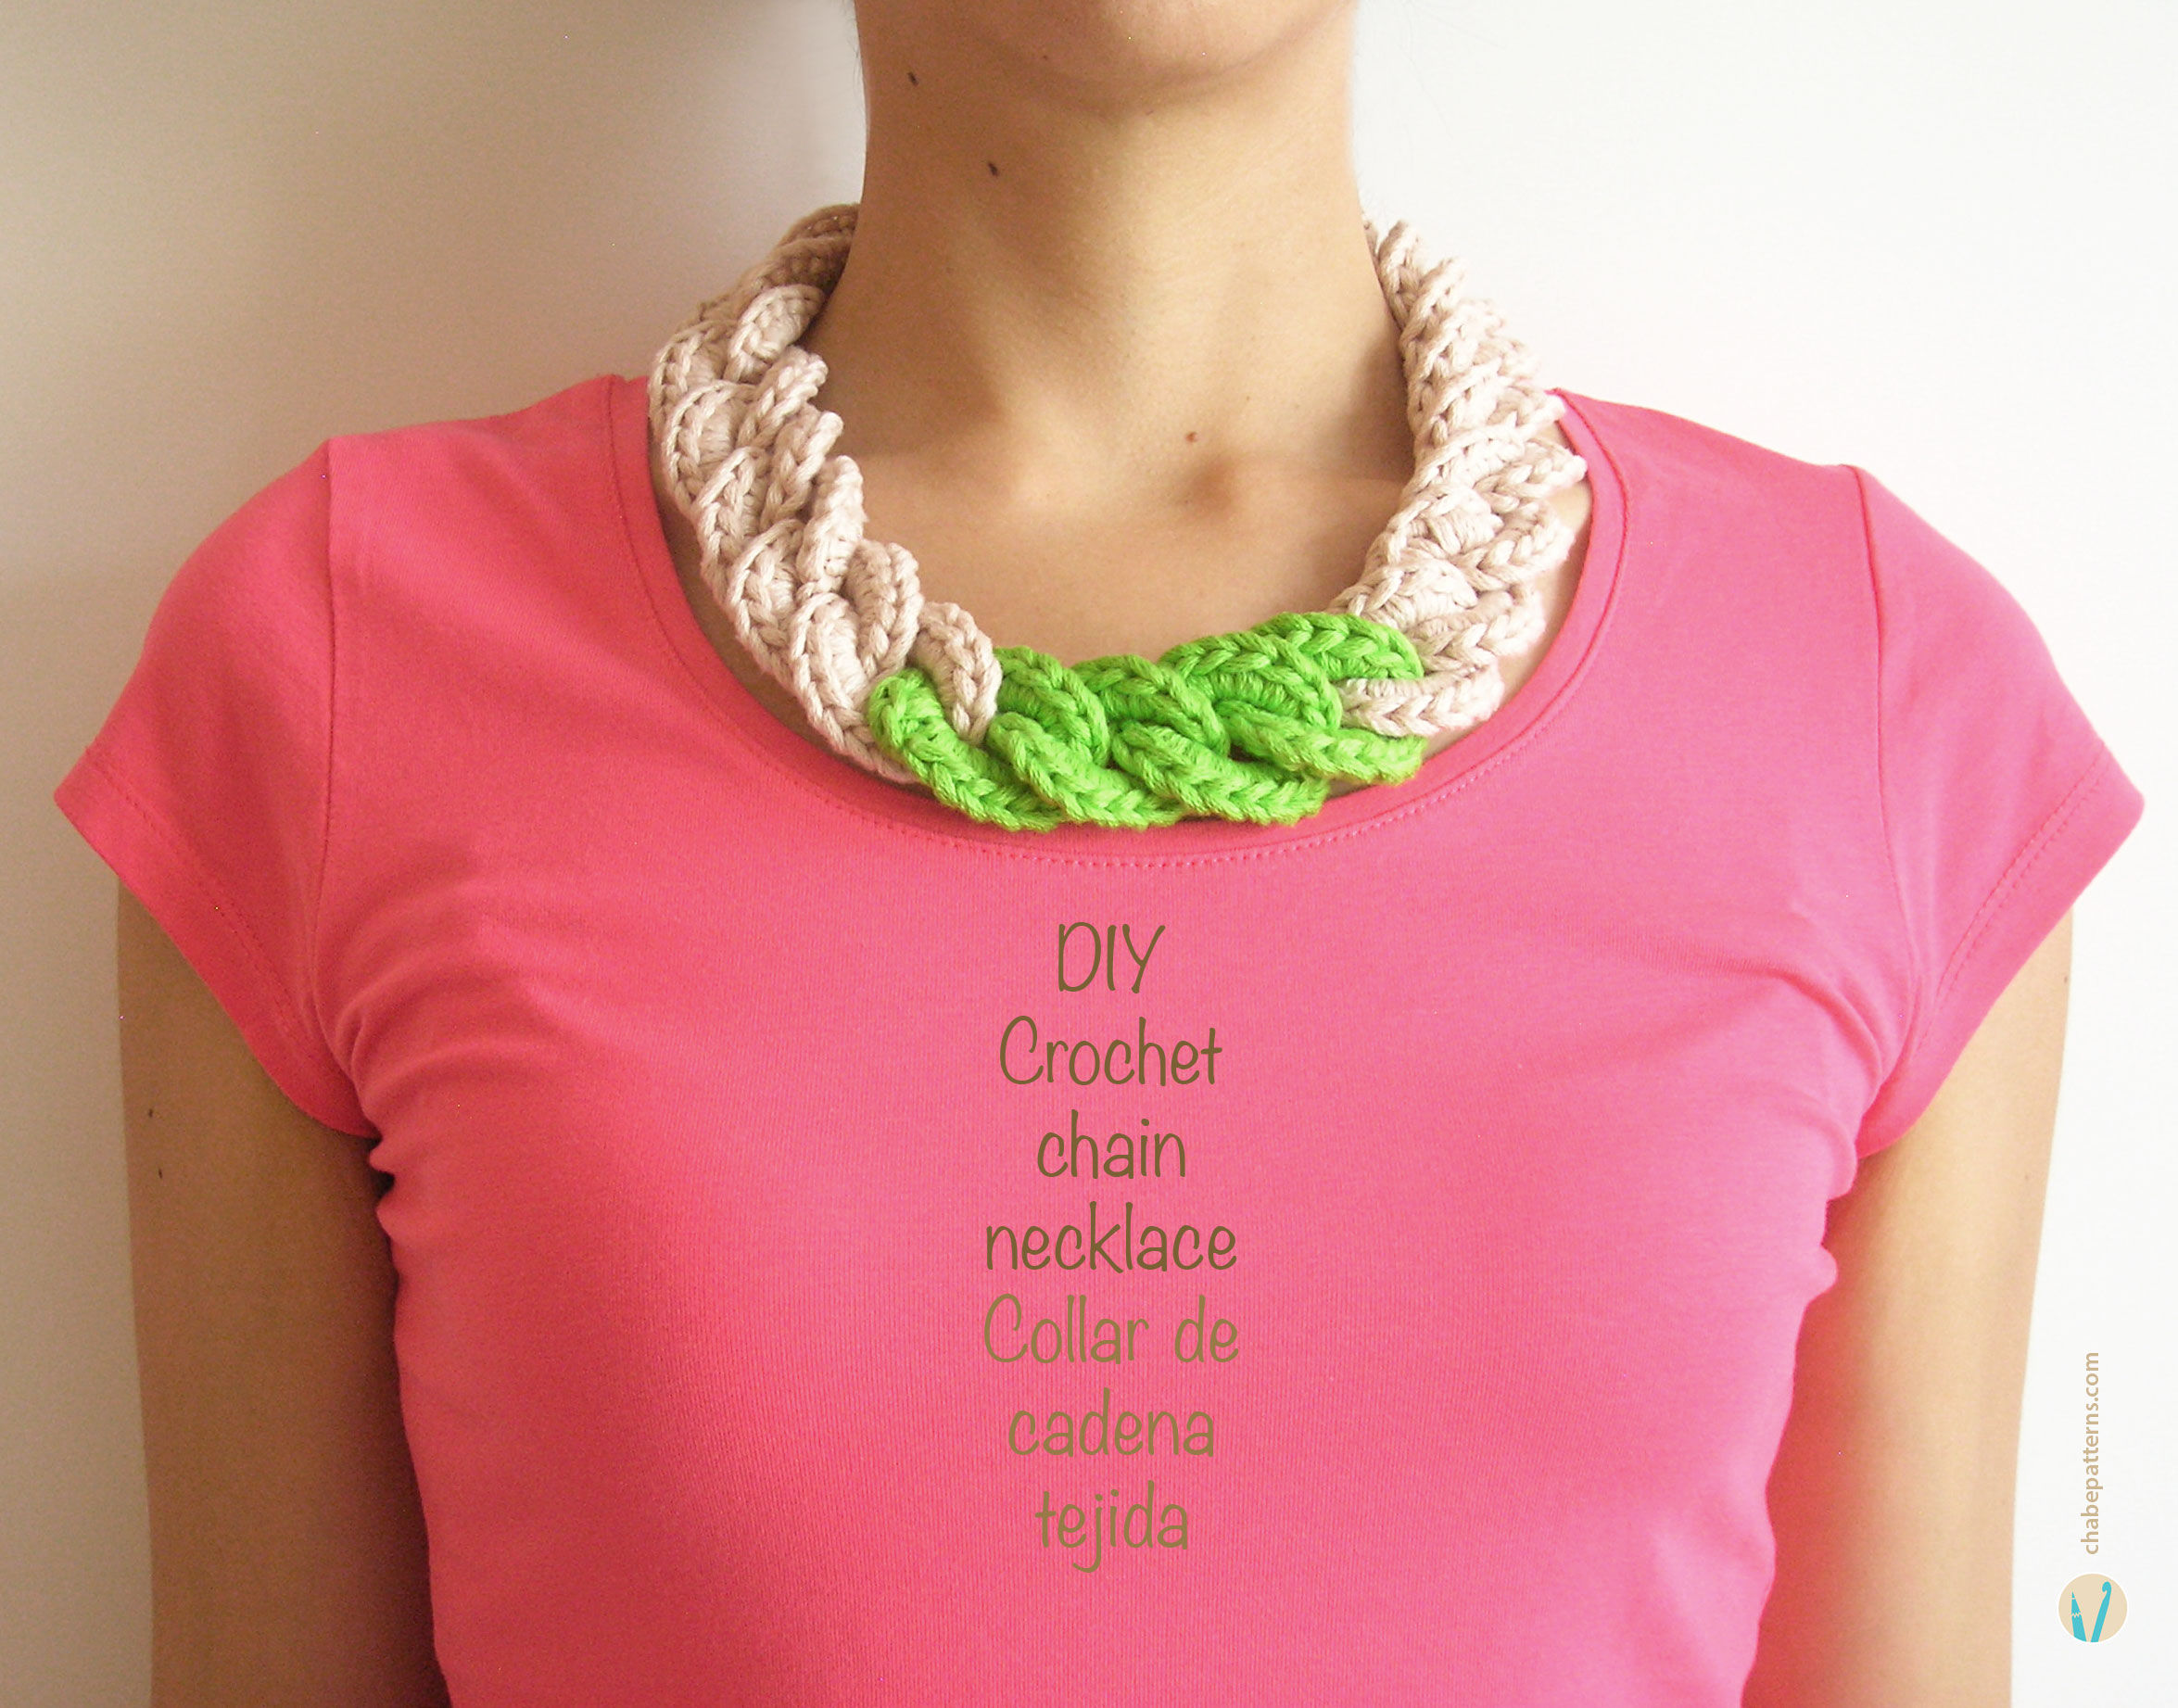 Crochet Necklace : Crochet chain necklace / Collar de cadena tejida Chabepatterns